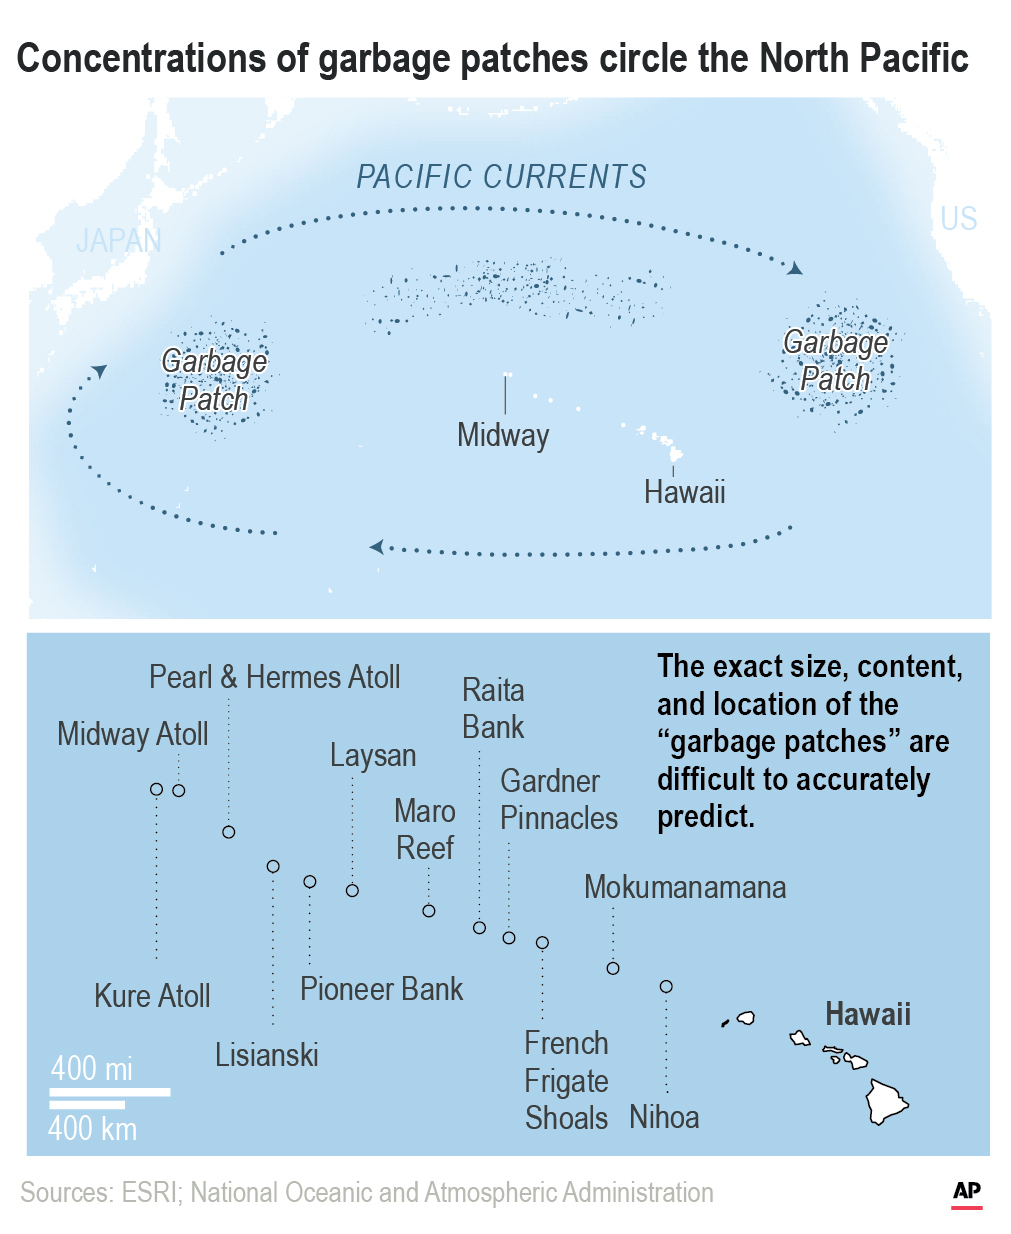 Pacific garbage concentrations